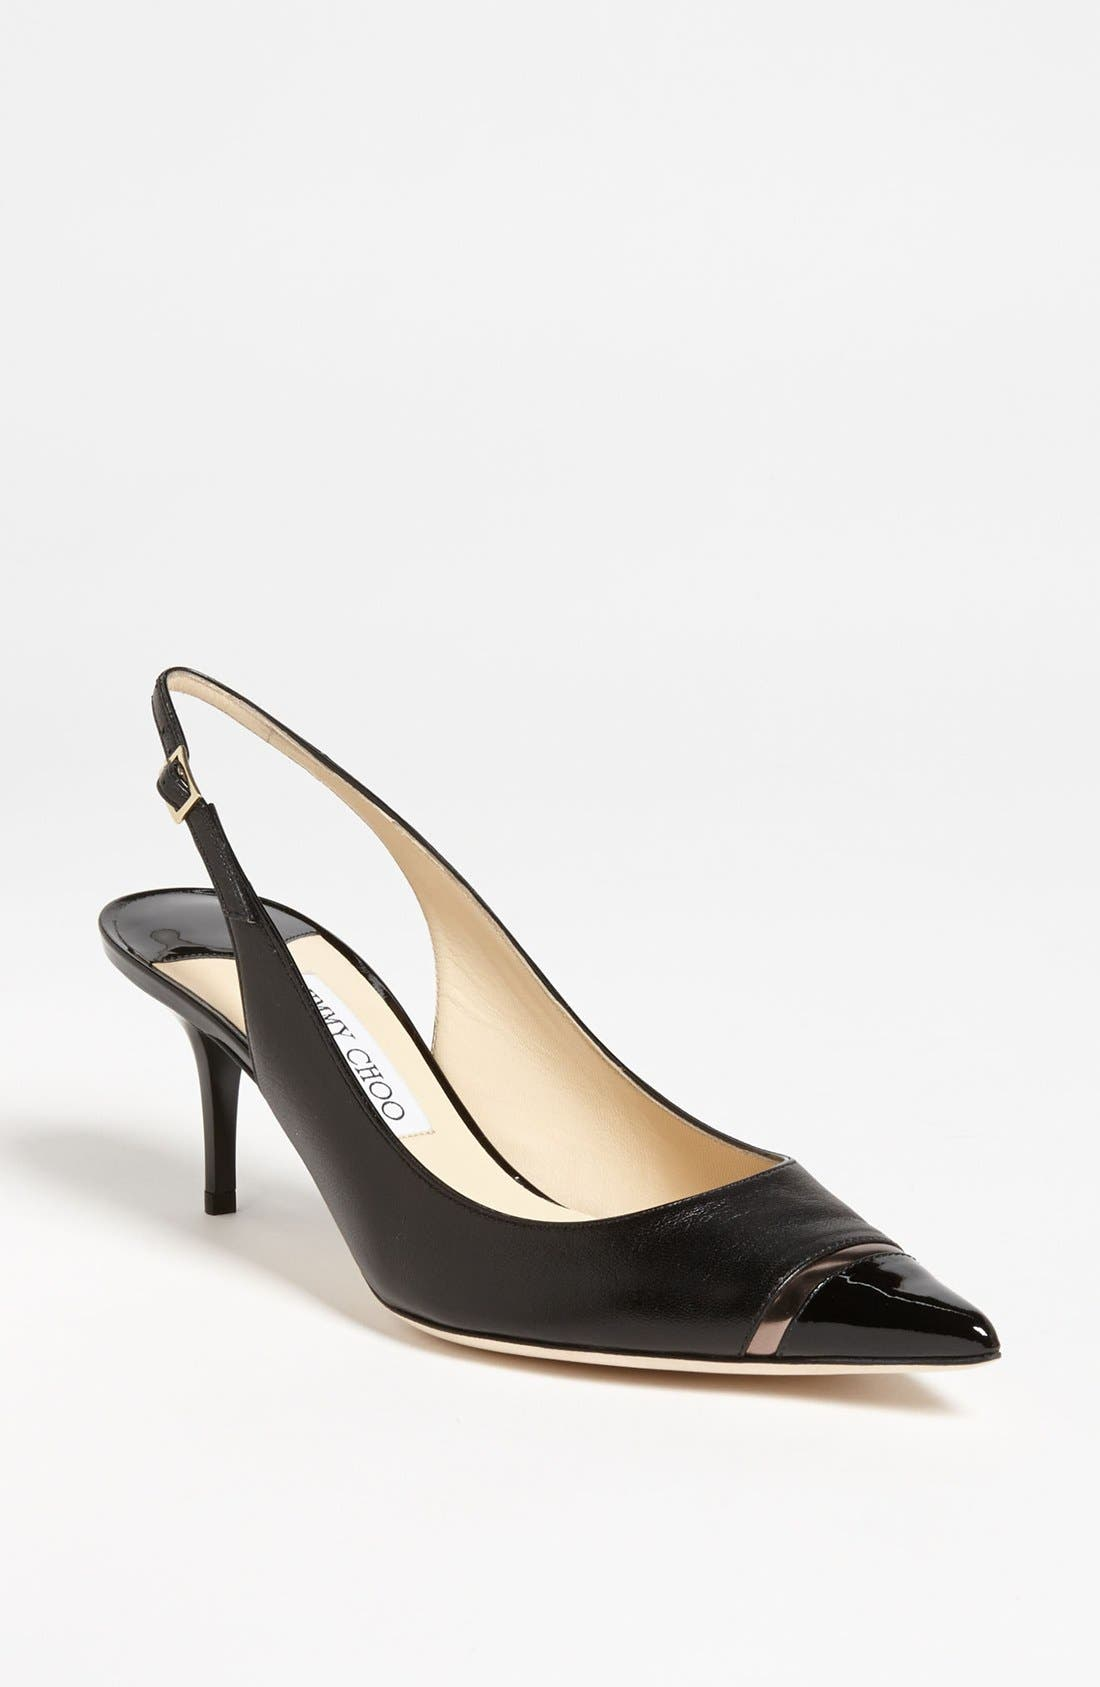 Main Image - Jimmy Choo 'Laurel' Cap Toe Slingback Pump